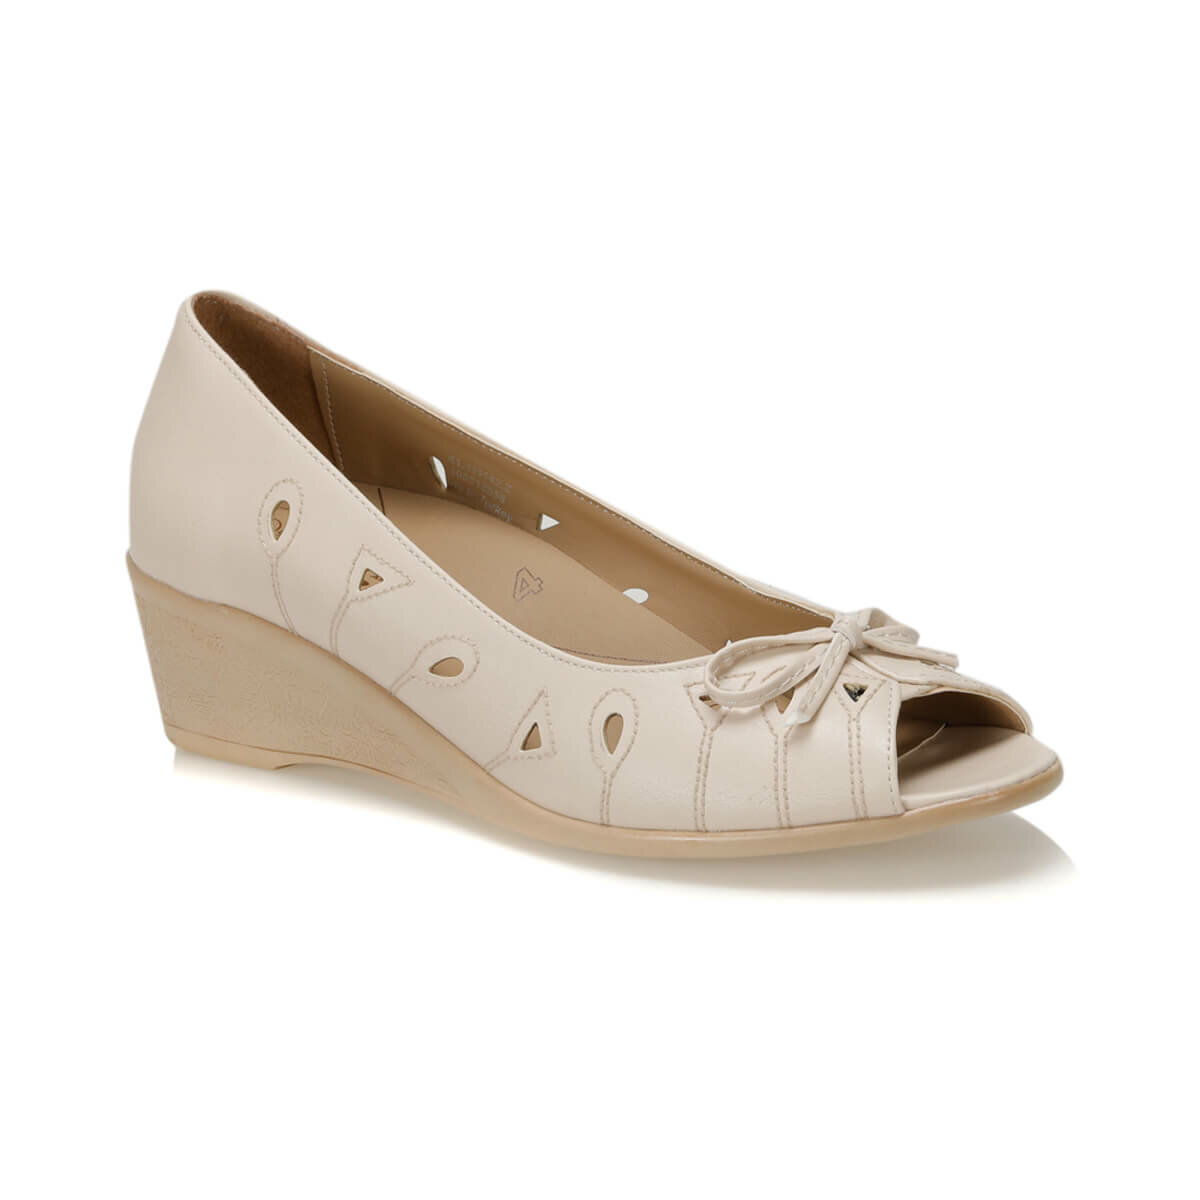 FLO 81.111142.Z Beige Women 'S Shoes Polaris 5 Point